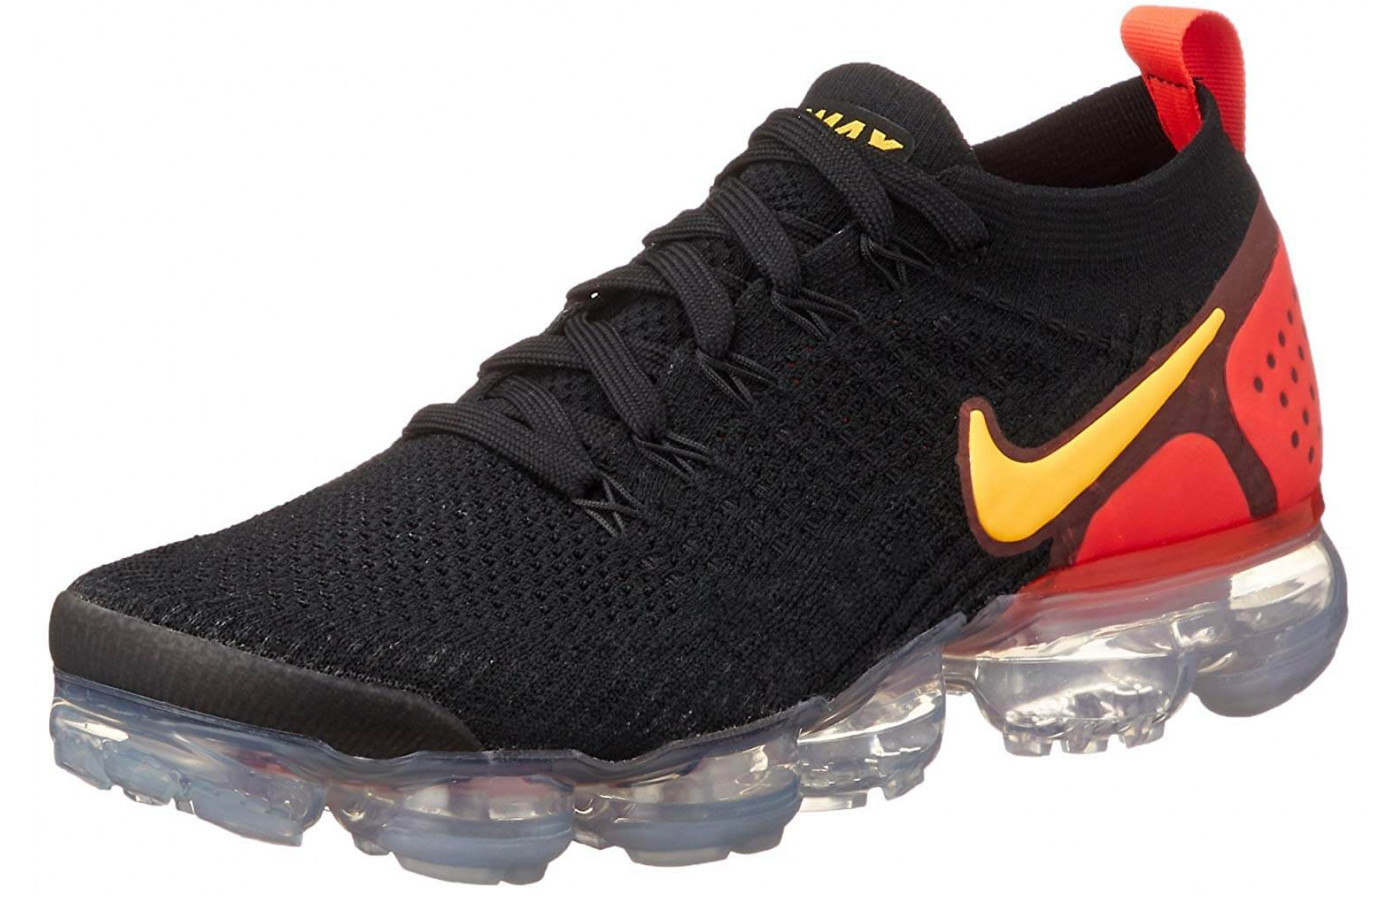 the best attitude 8a4f3 a2382 Nike Air VaporMax Flyknit 2 - To Buy or Not in May 2019